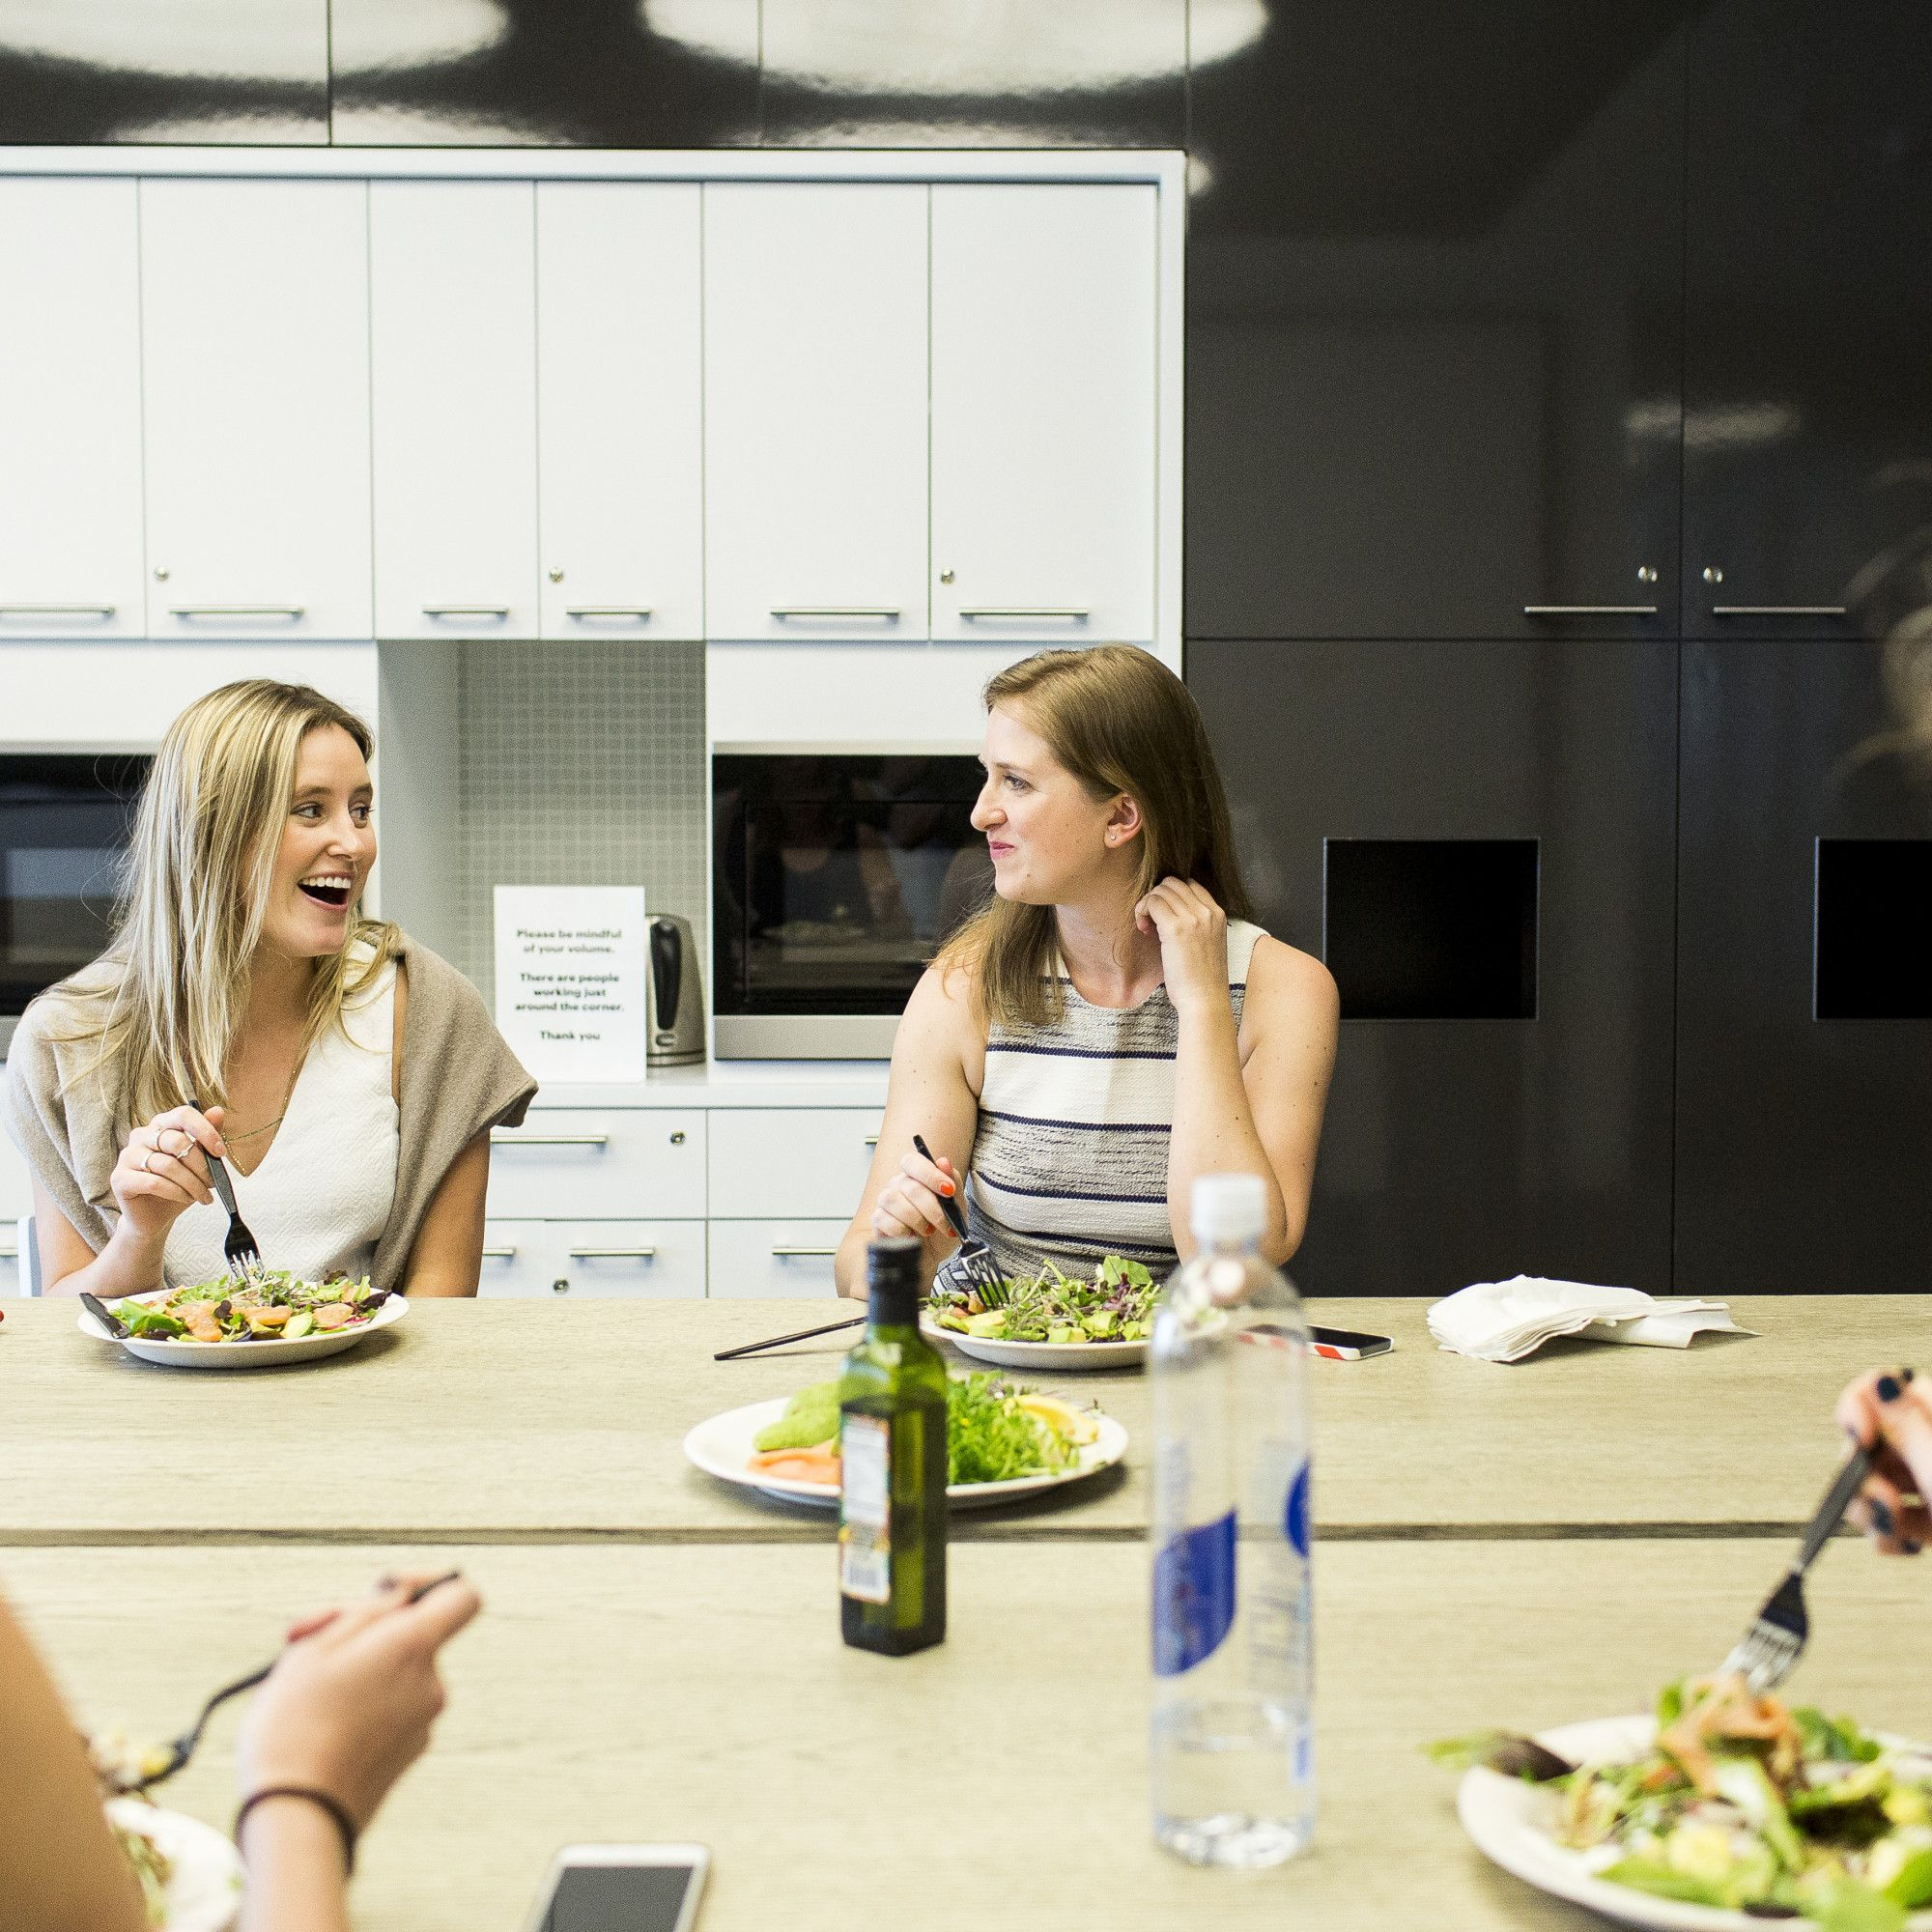 Host A Lunch Swap And Get Out Of Your Desk Rut